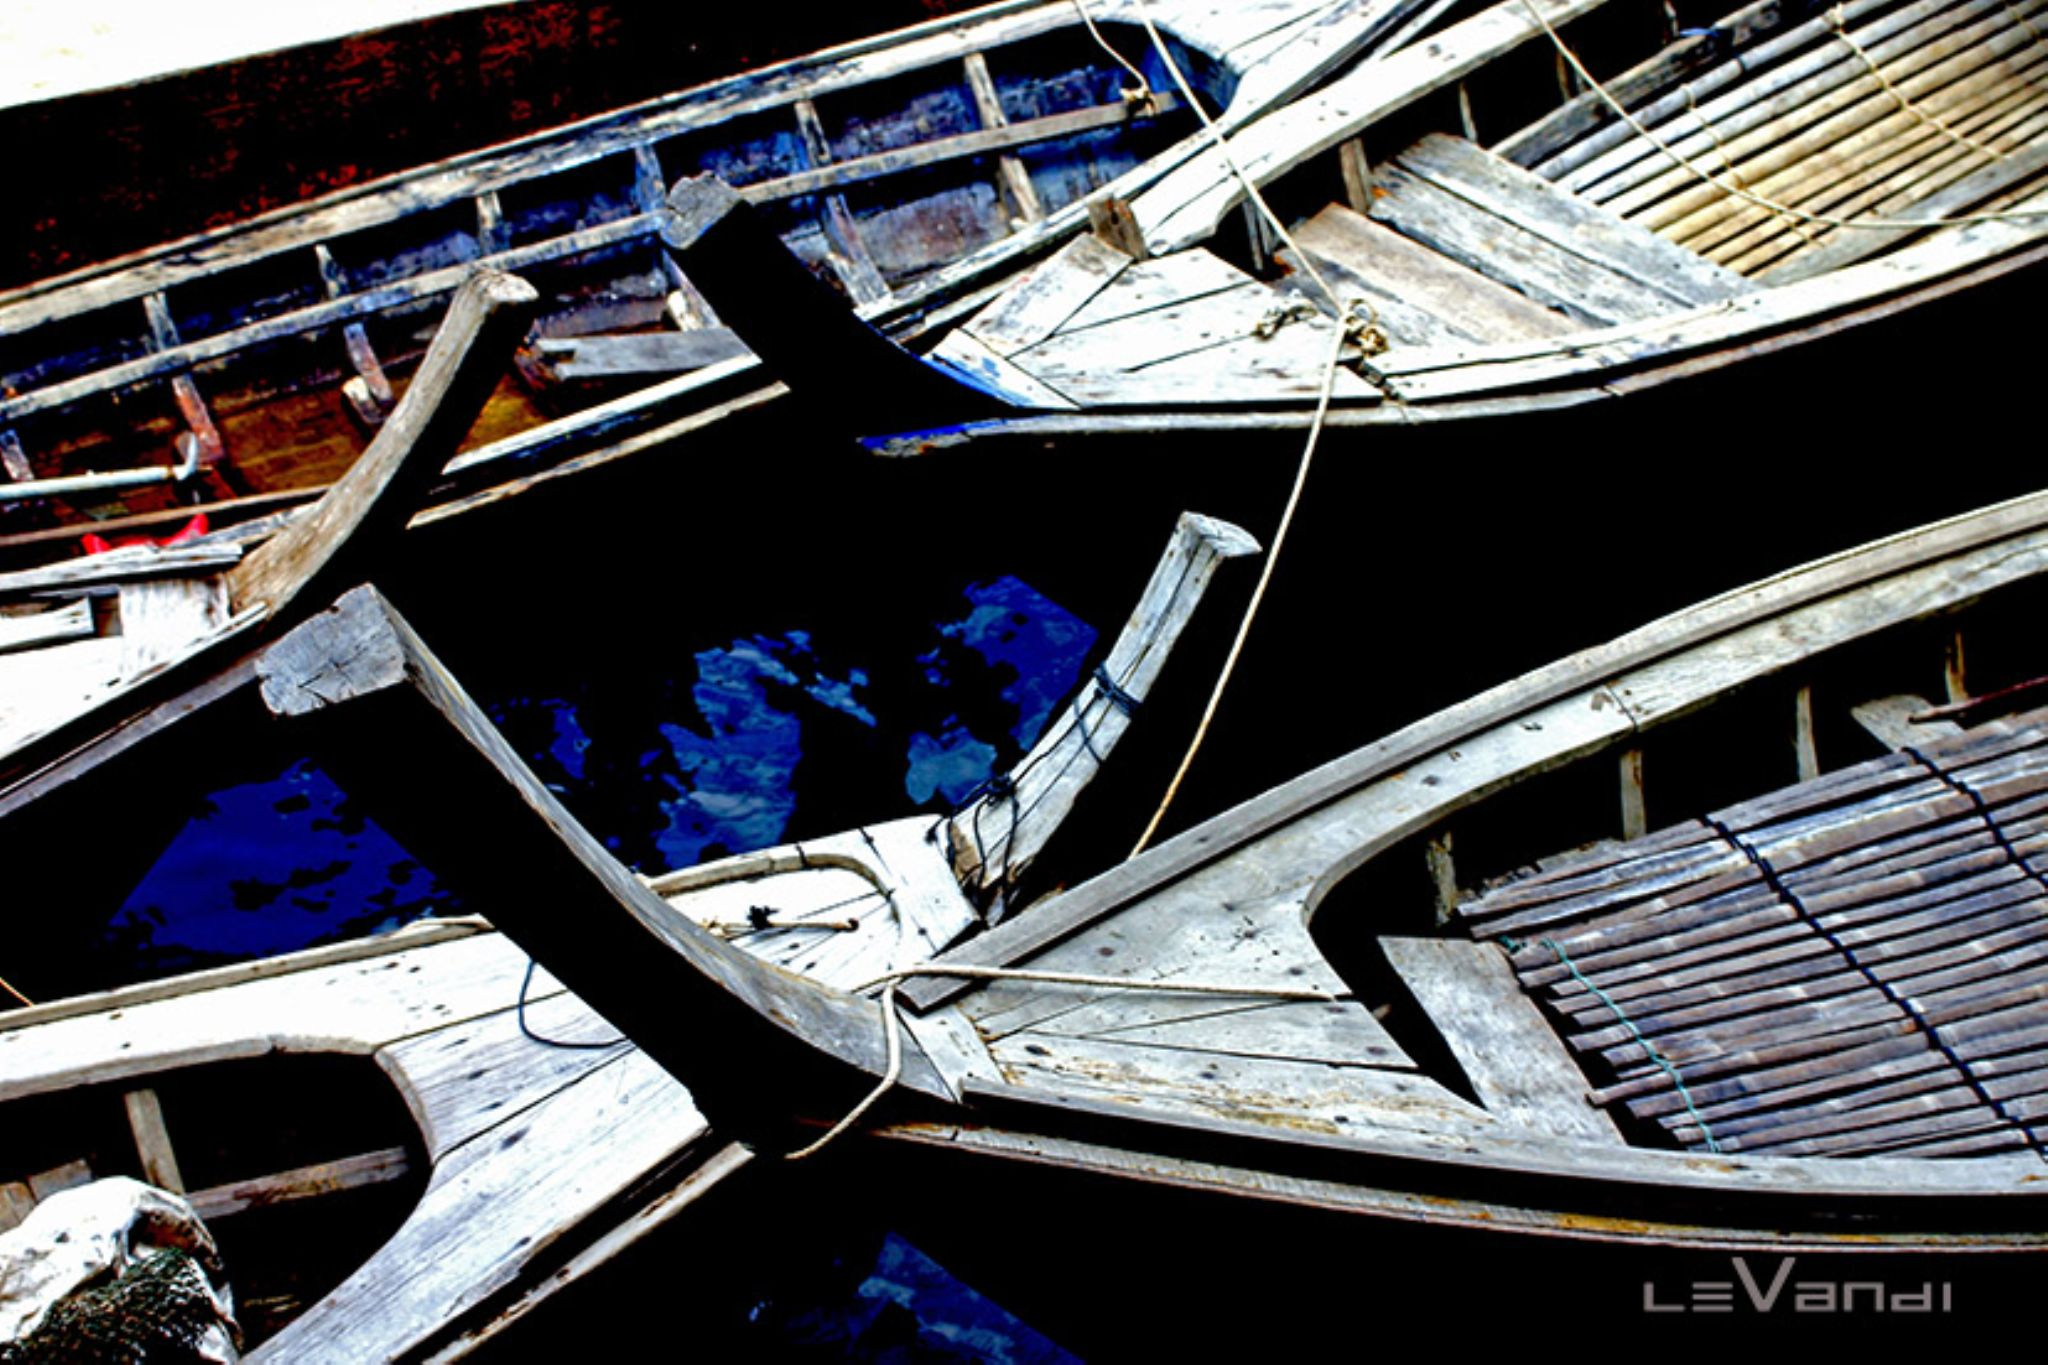 BOATS by LEVANDI